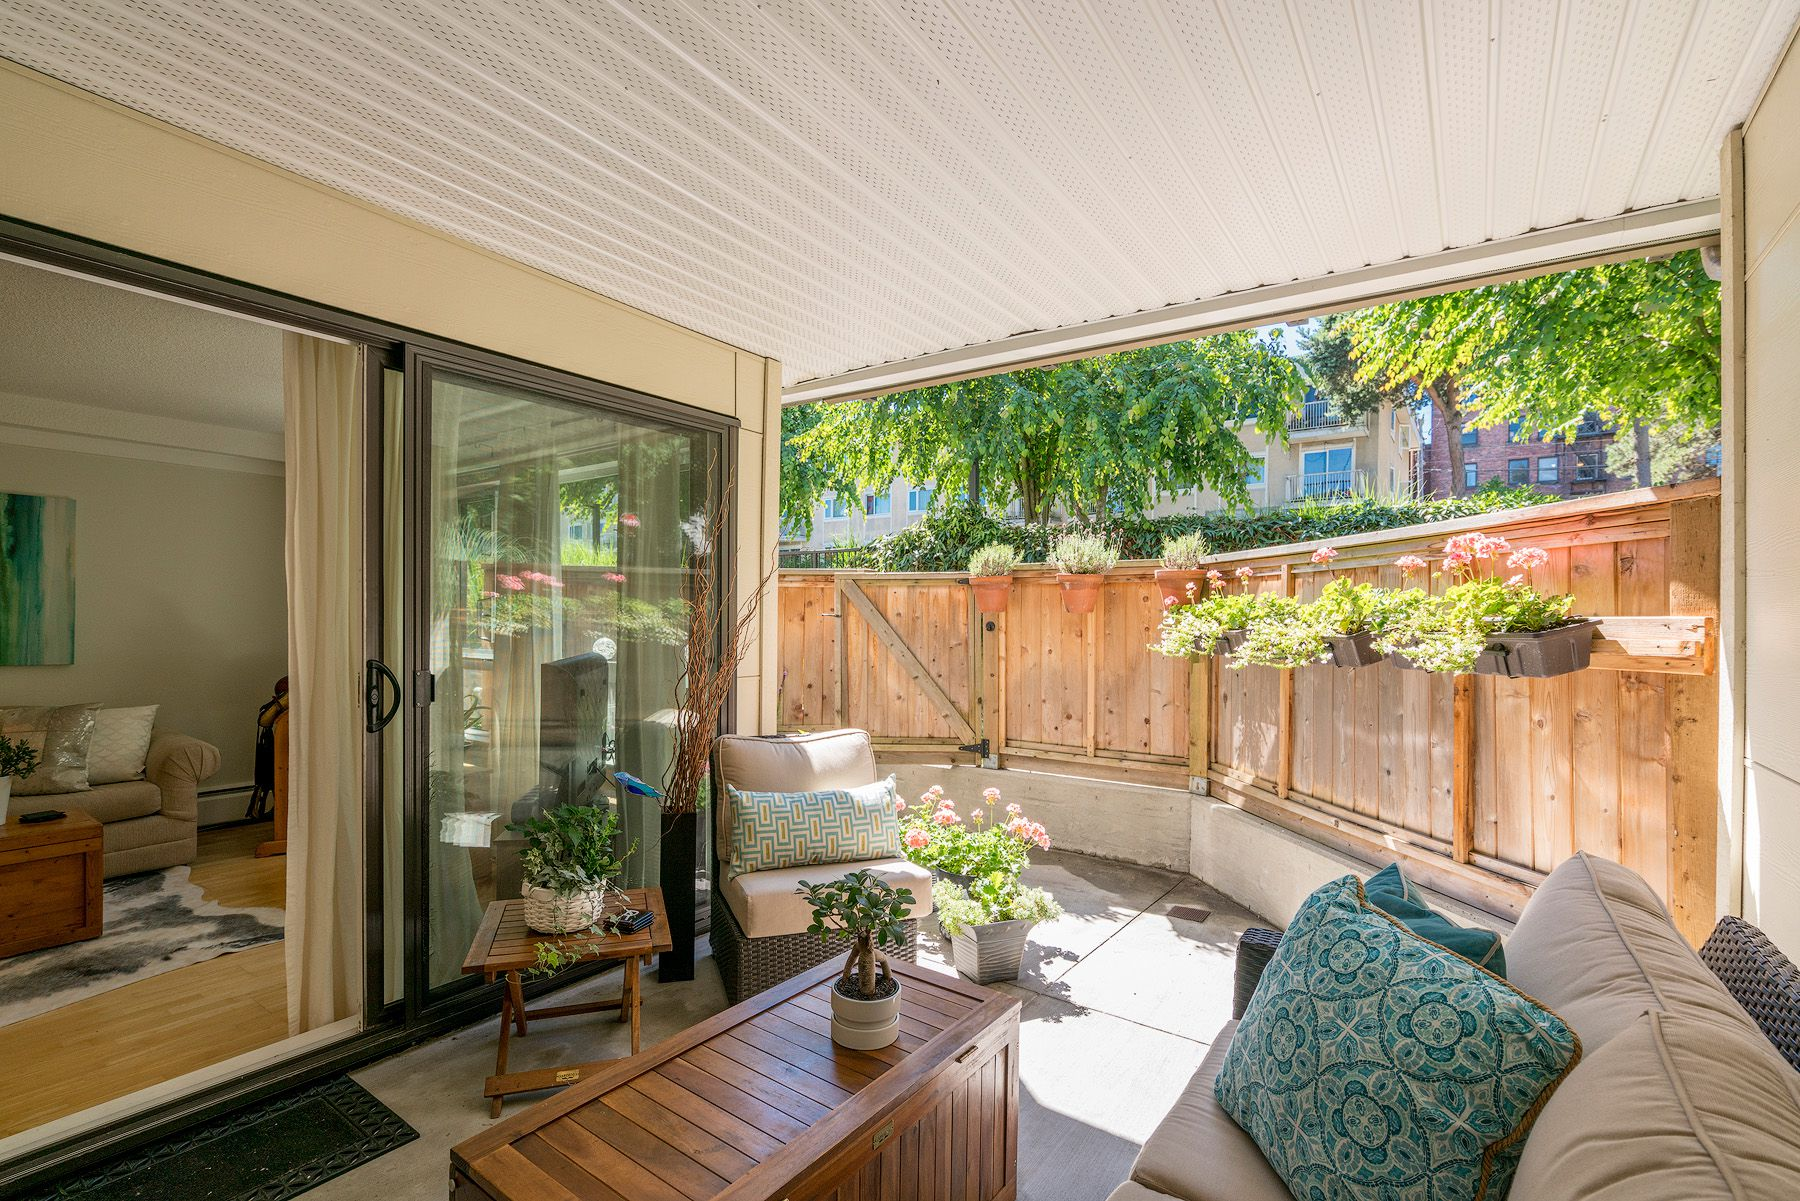 """Main Photo: 211 621 E 6TH Avenue in Vancouver: Mount Pleasant VE Condo for sale in """"Fairmont Place"""" (Vancouver East)  : MLS®# R2289623"""